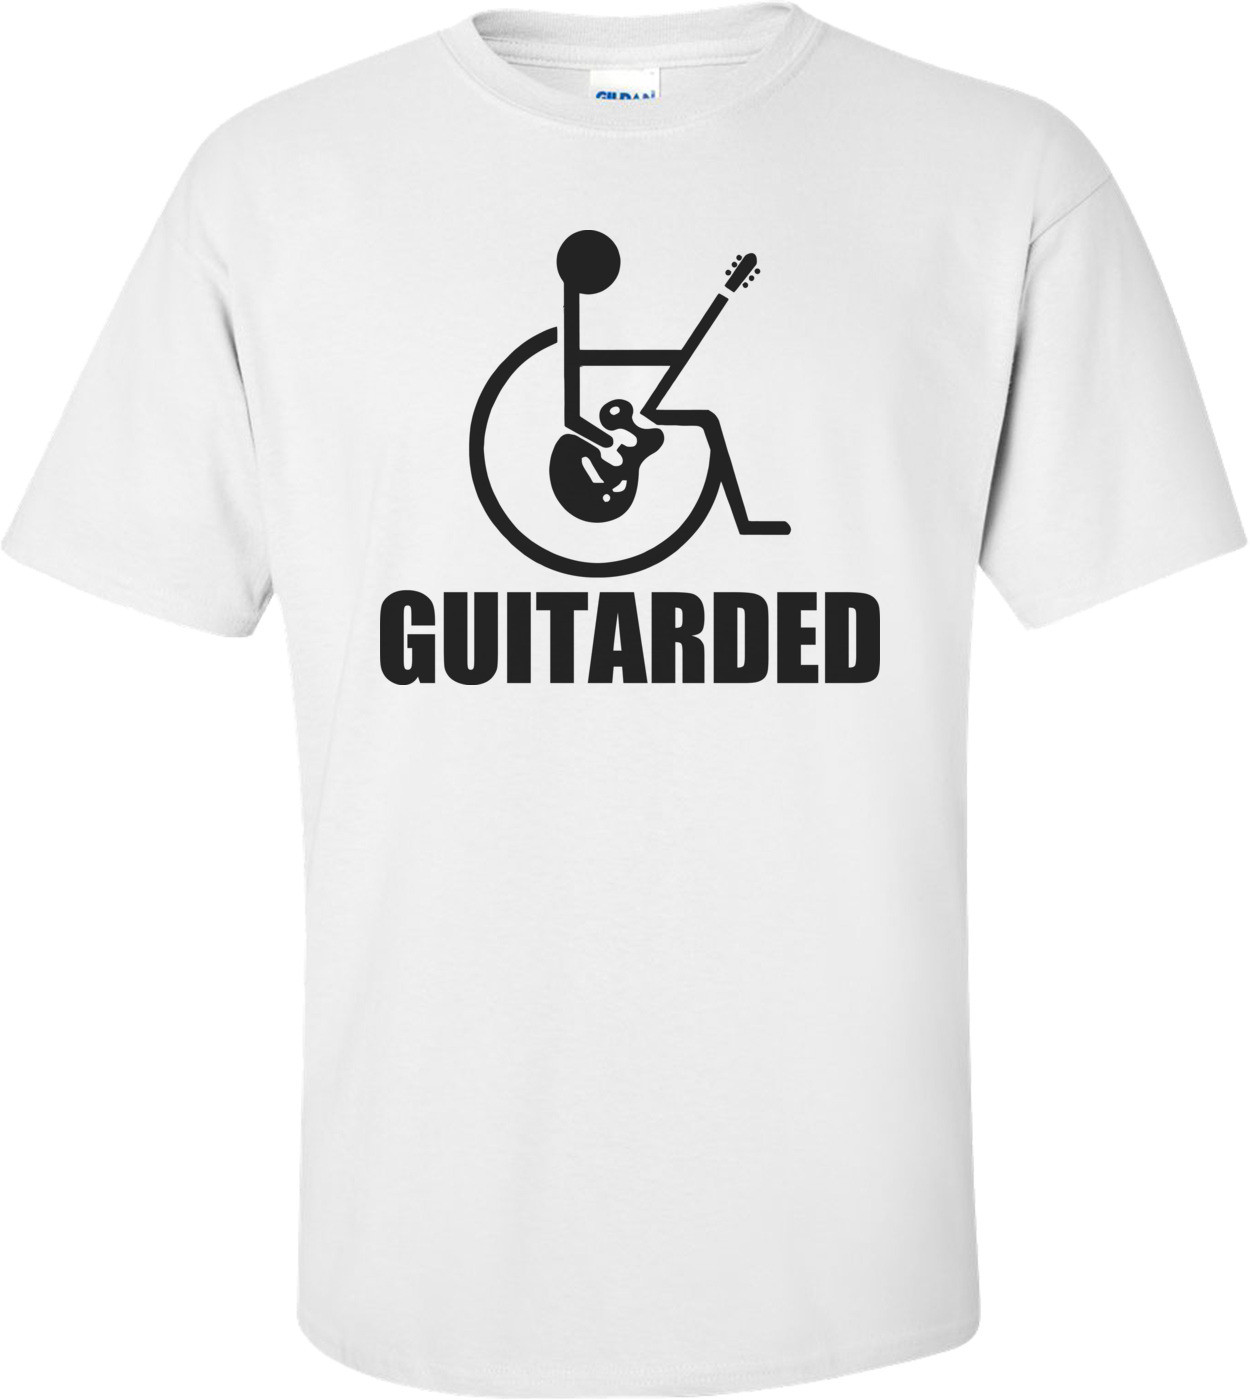 Guitarded Shirt